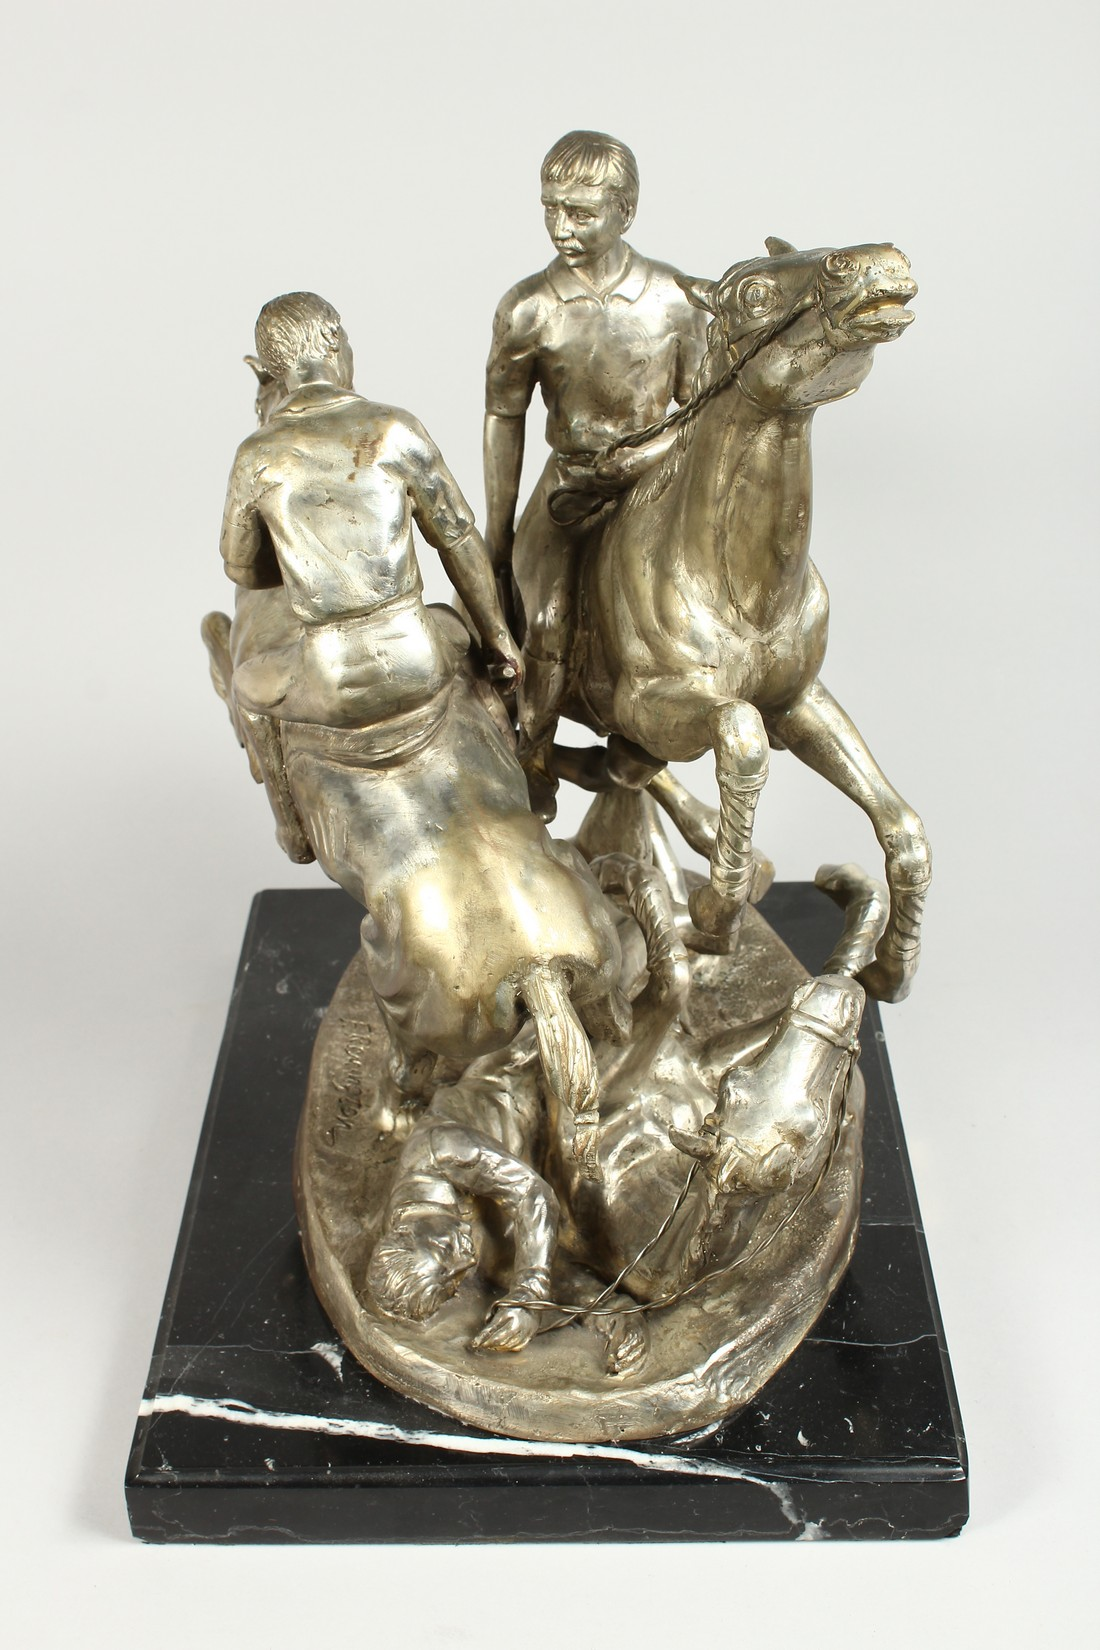 AFTER F. REMMINGTON A SILVER BRONZE GROUP OF TWO RIDERS ON HORSEBACK, a horn and rider on the floor. - Image 10 of 16